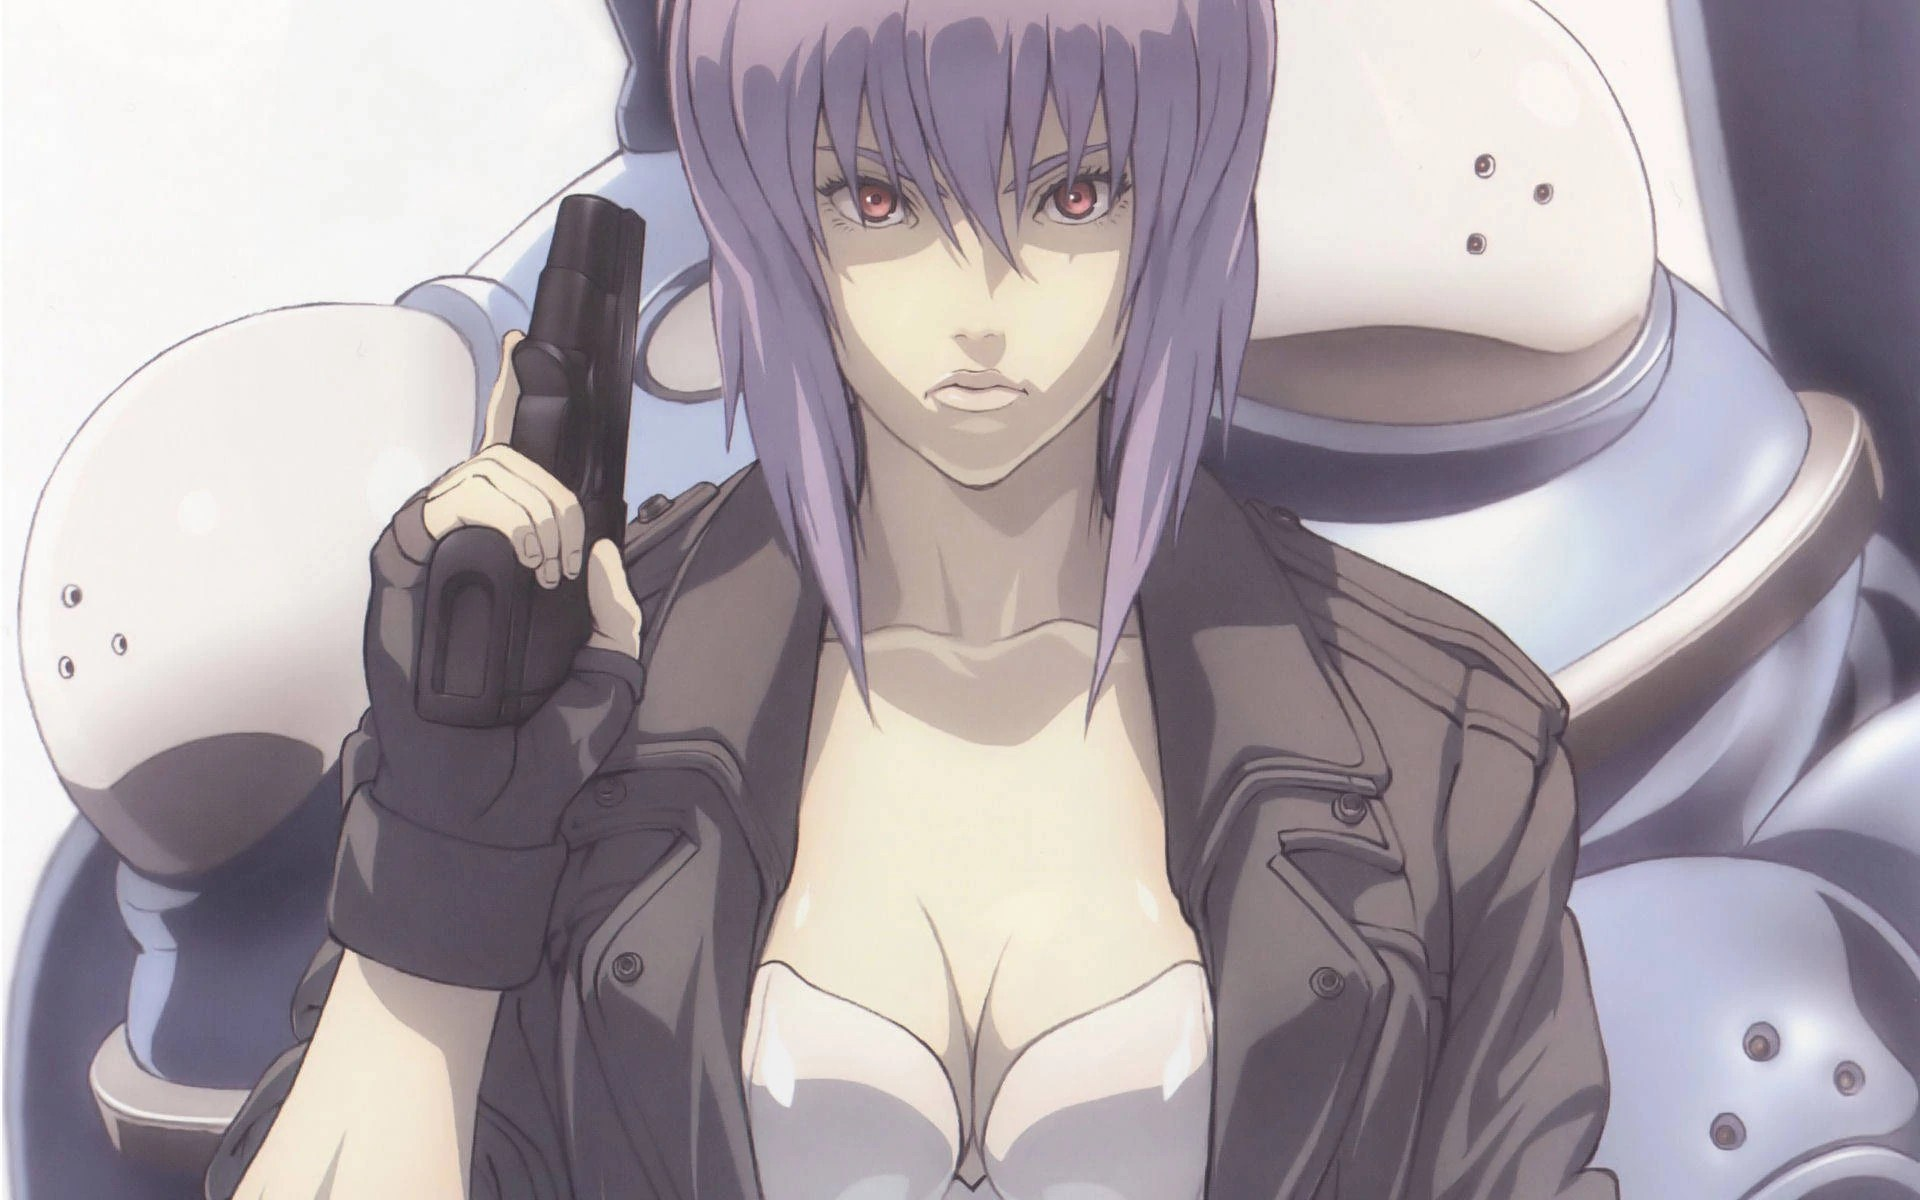 Motoko Kurasangi Ghost in the Shell Bad ass